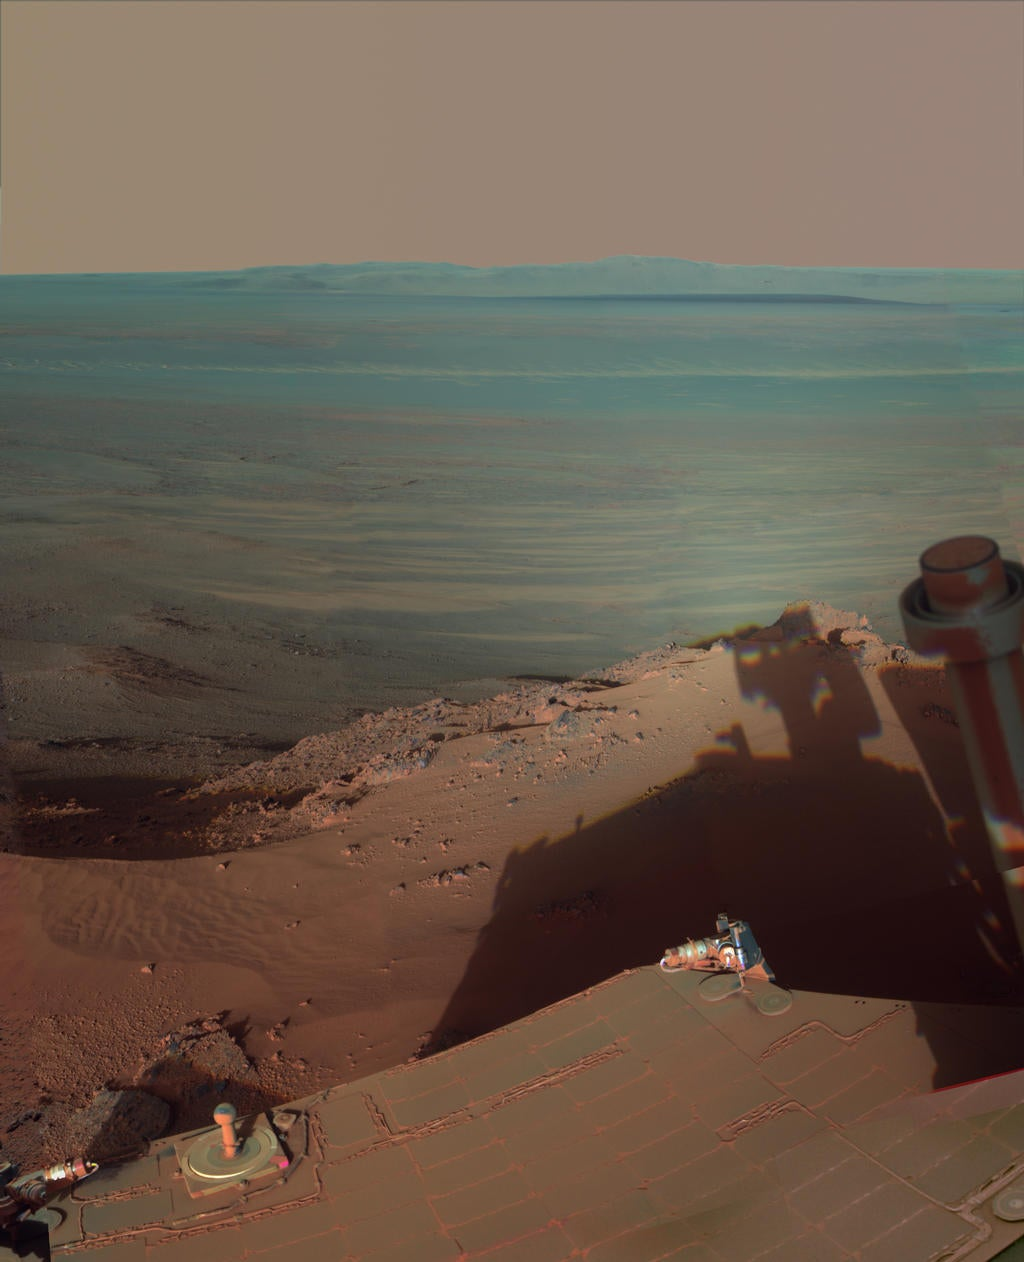 The Best Pictures Of Mars